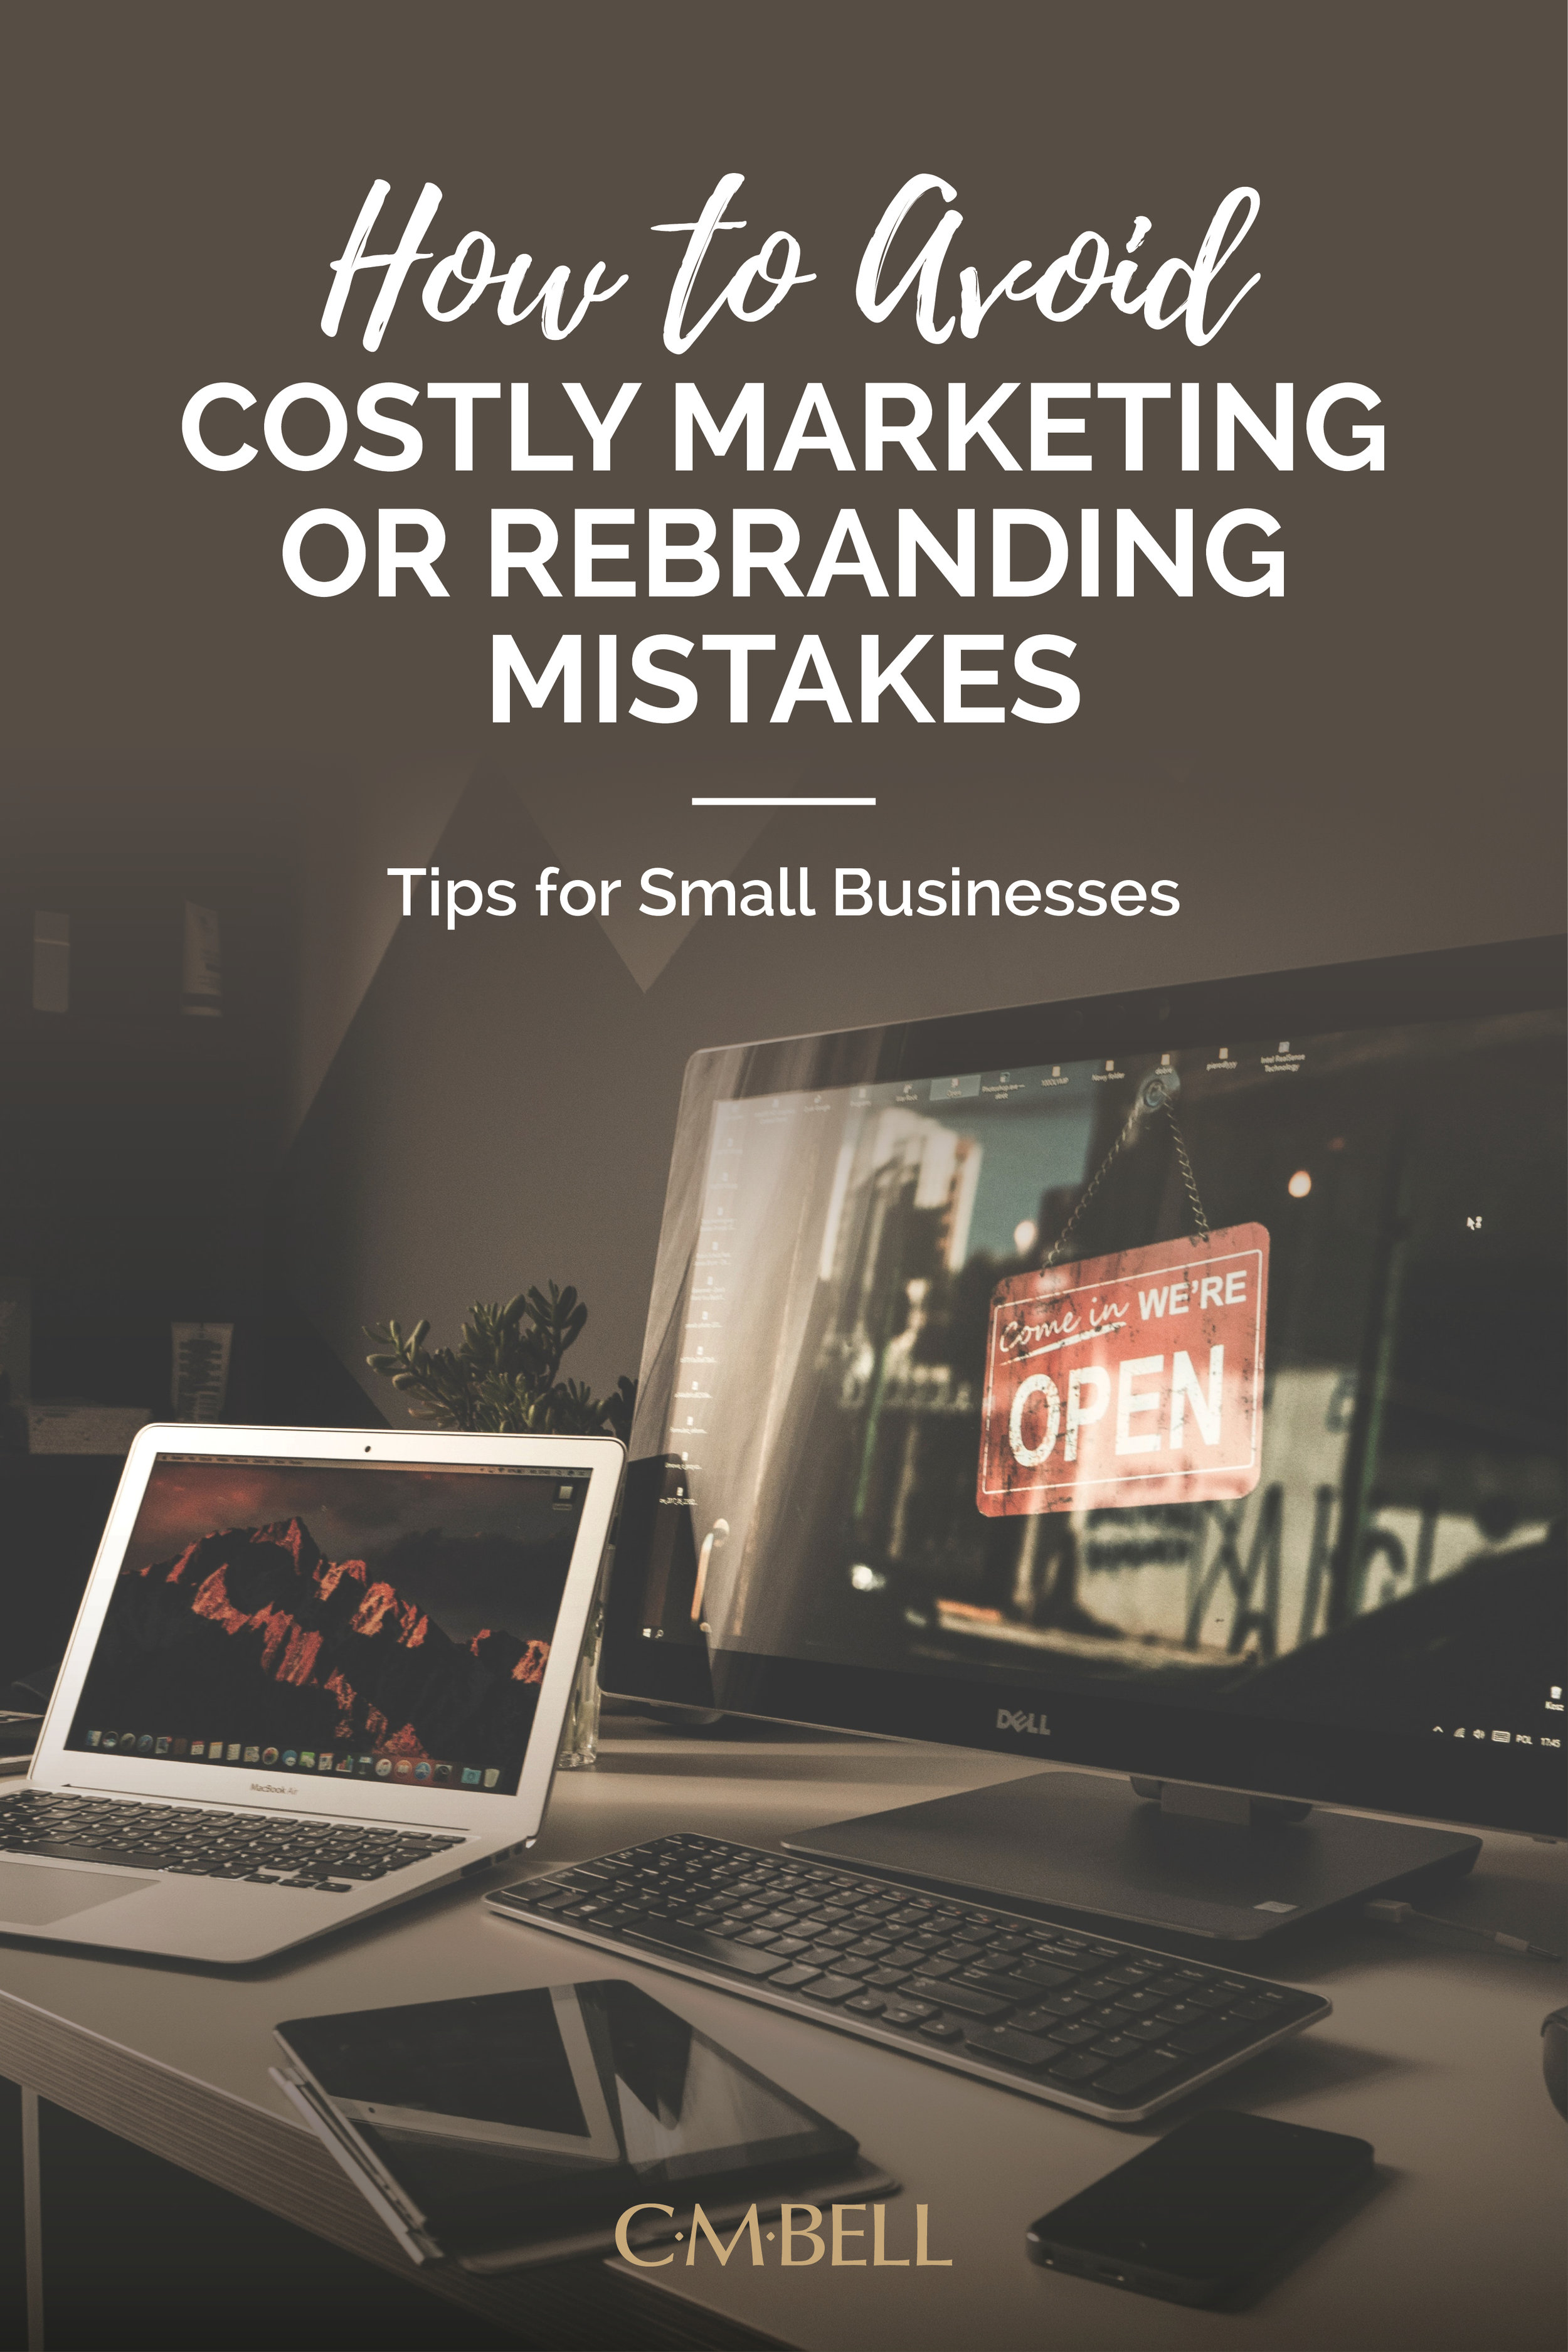 how-to-avoid-costly-marketing-or-rebranding-mistakes.jpg